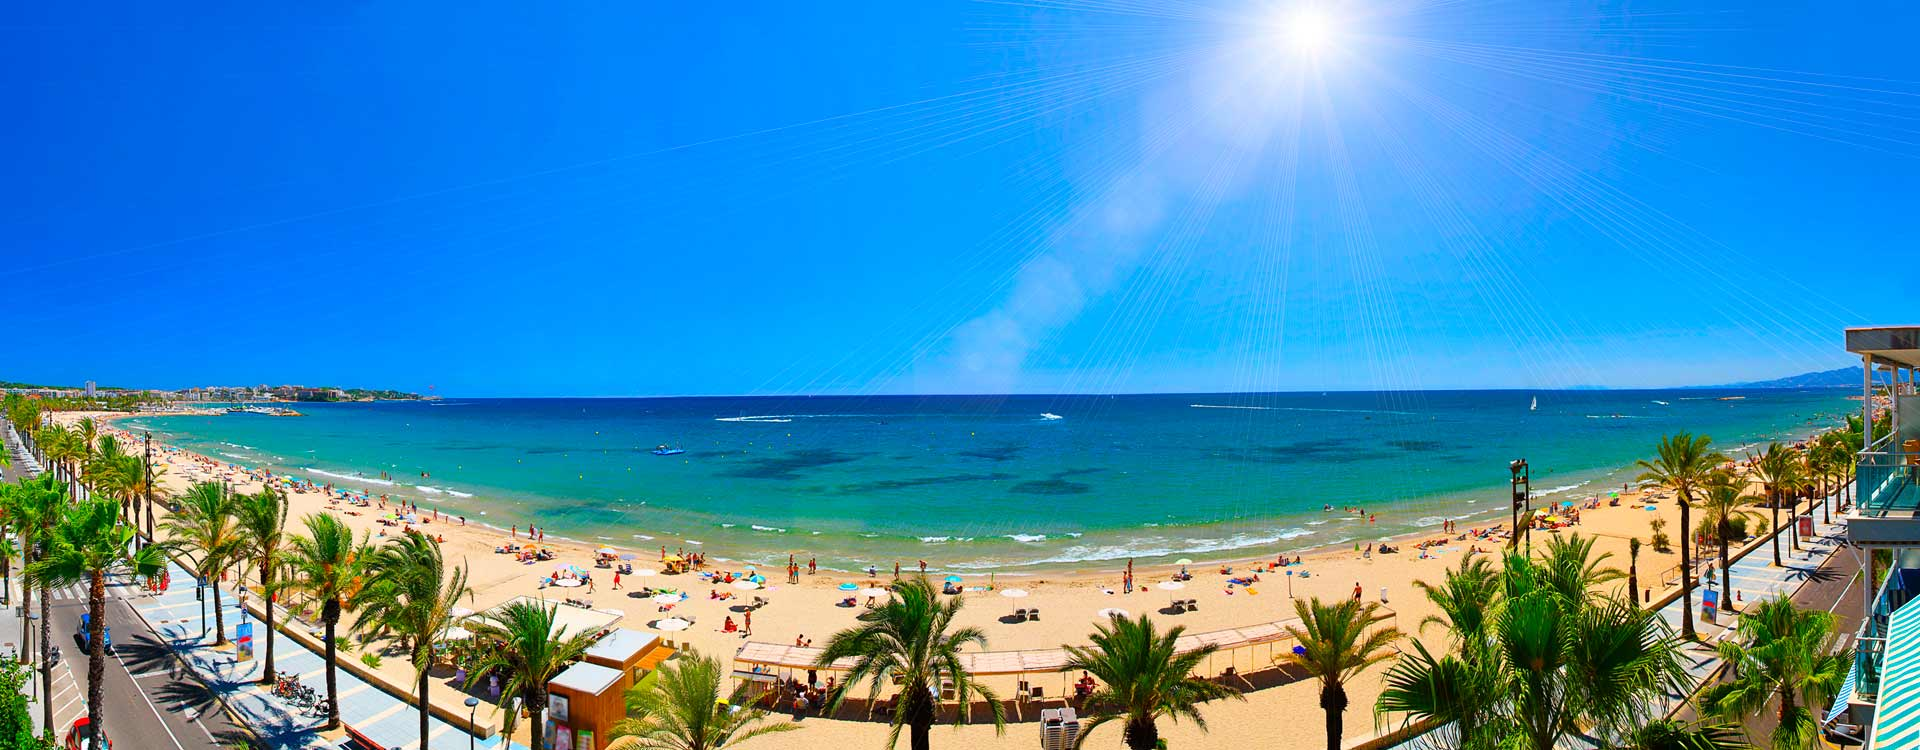 Costa Dorada Litoral - Holiday Rentals On The Costa Dorada